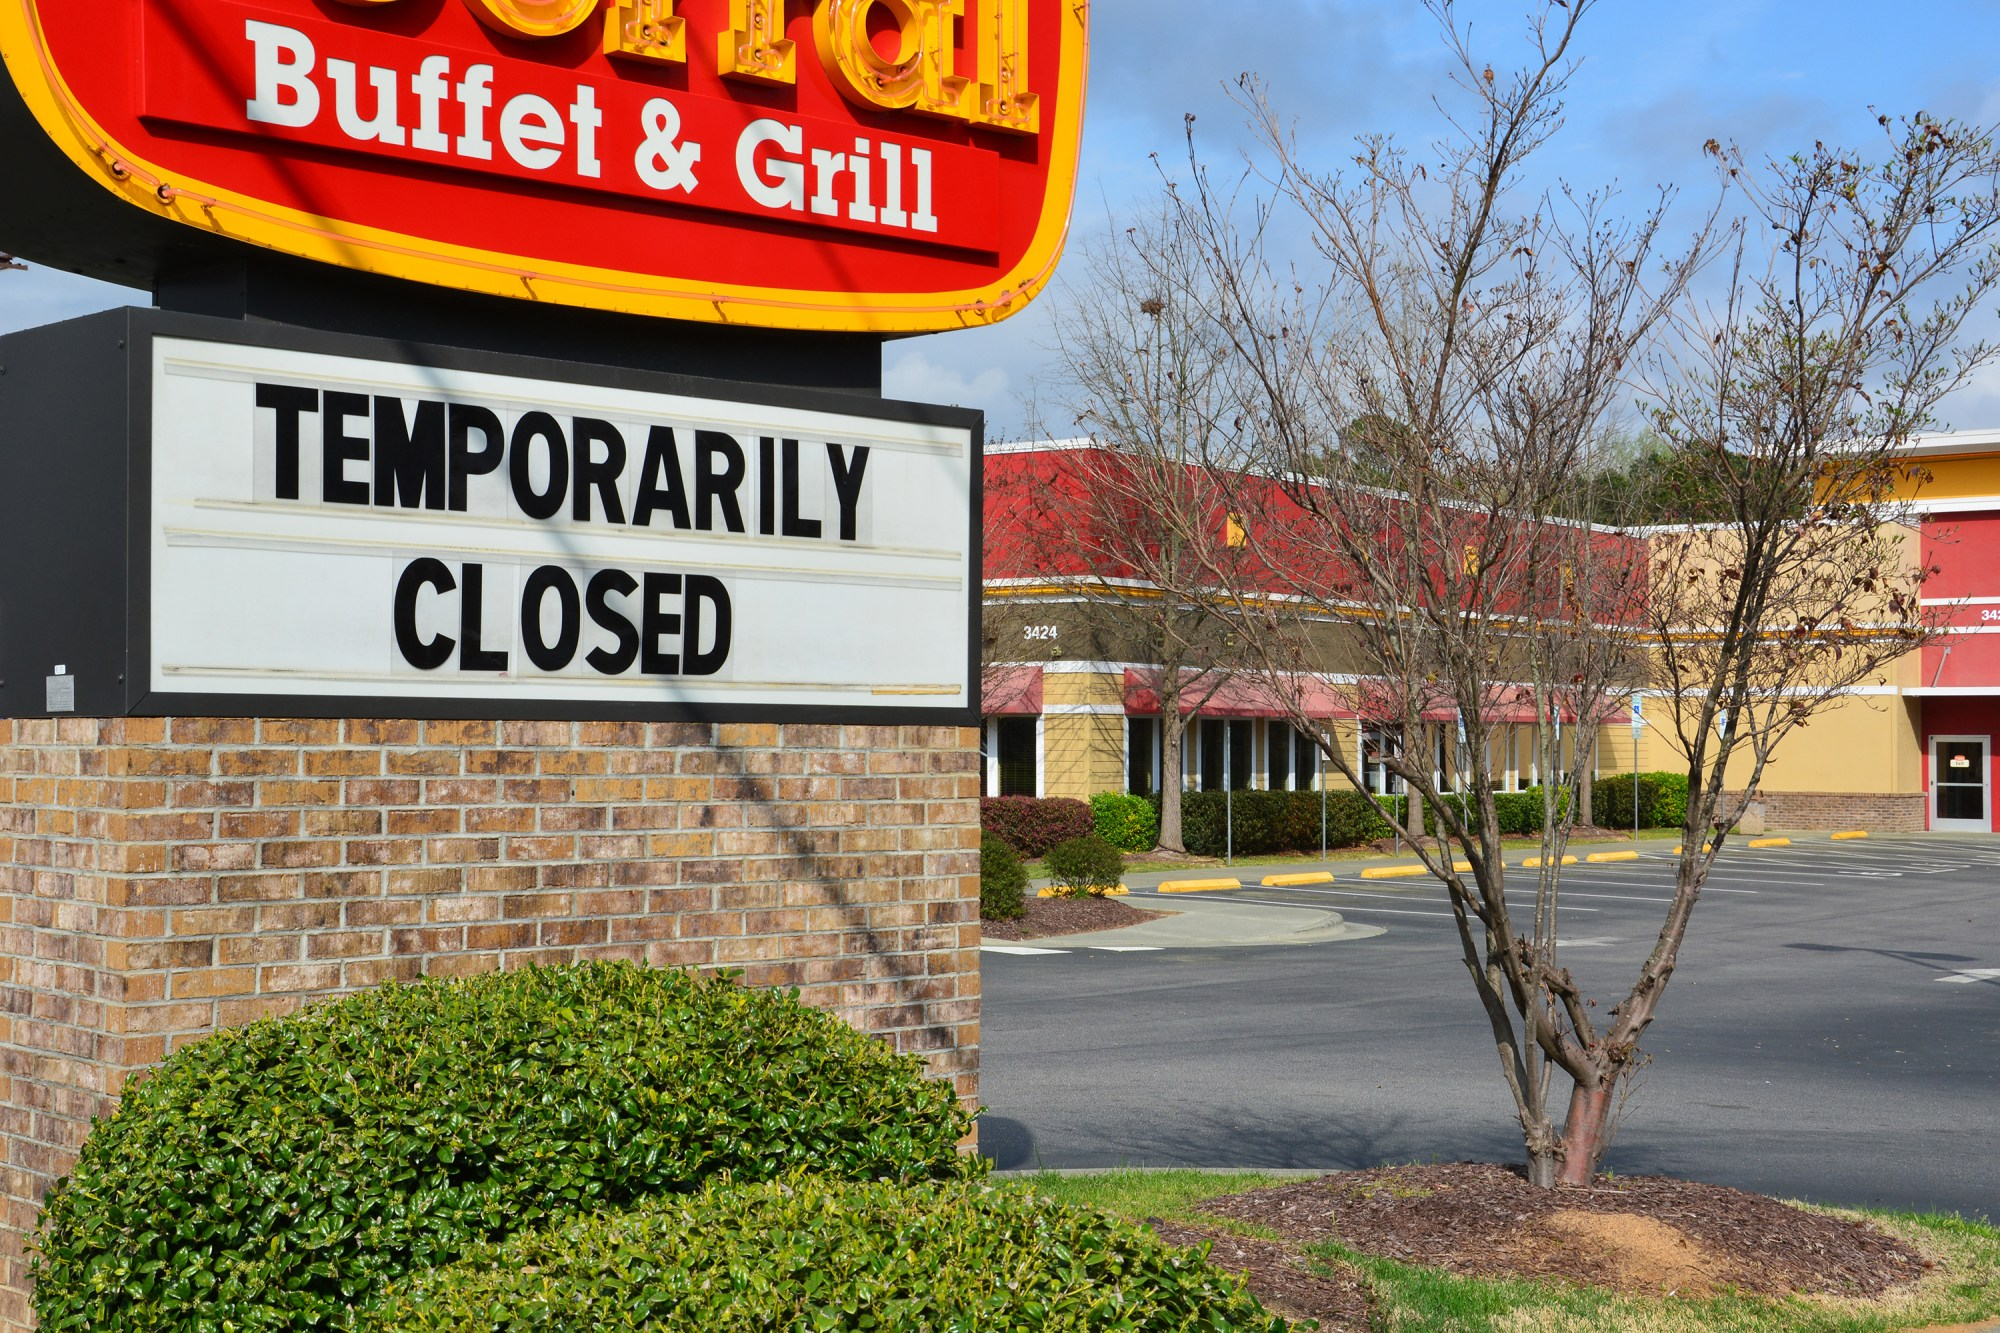 A closed Golden Corral restaurant in Raleigh, North Carolina, on March 21, 2020.